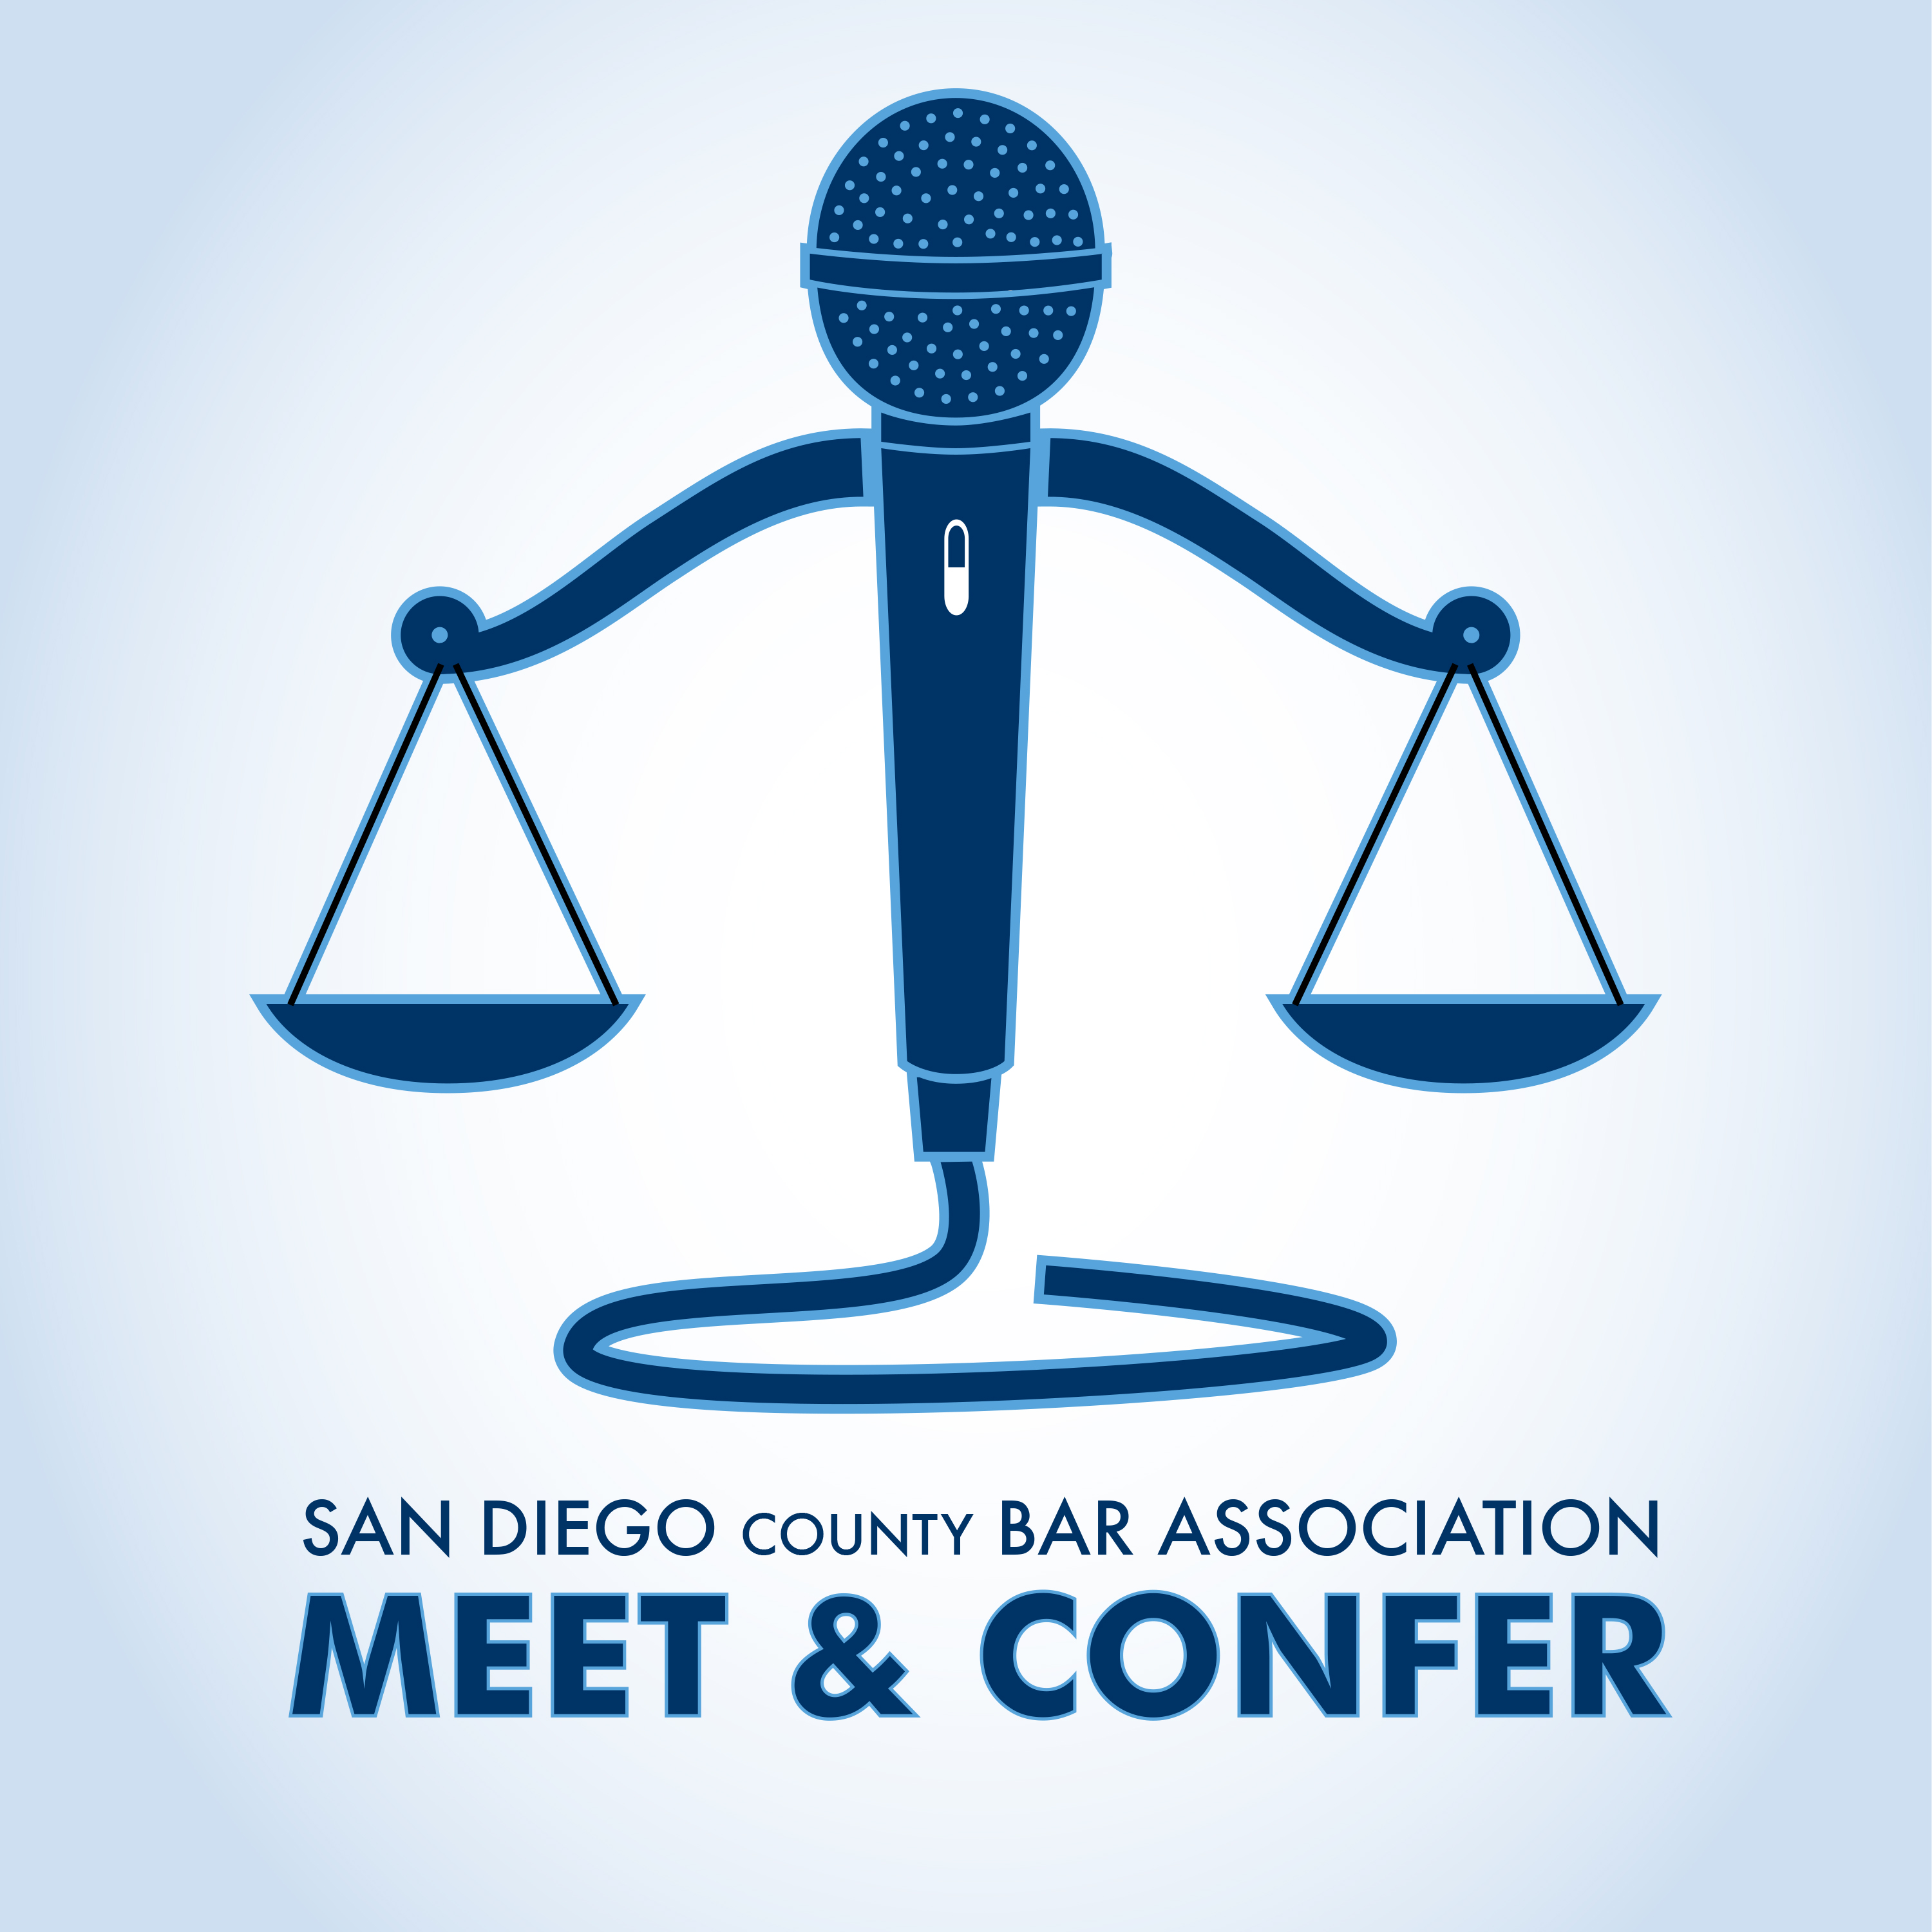 SDCBA's Meet and Confer